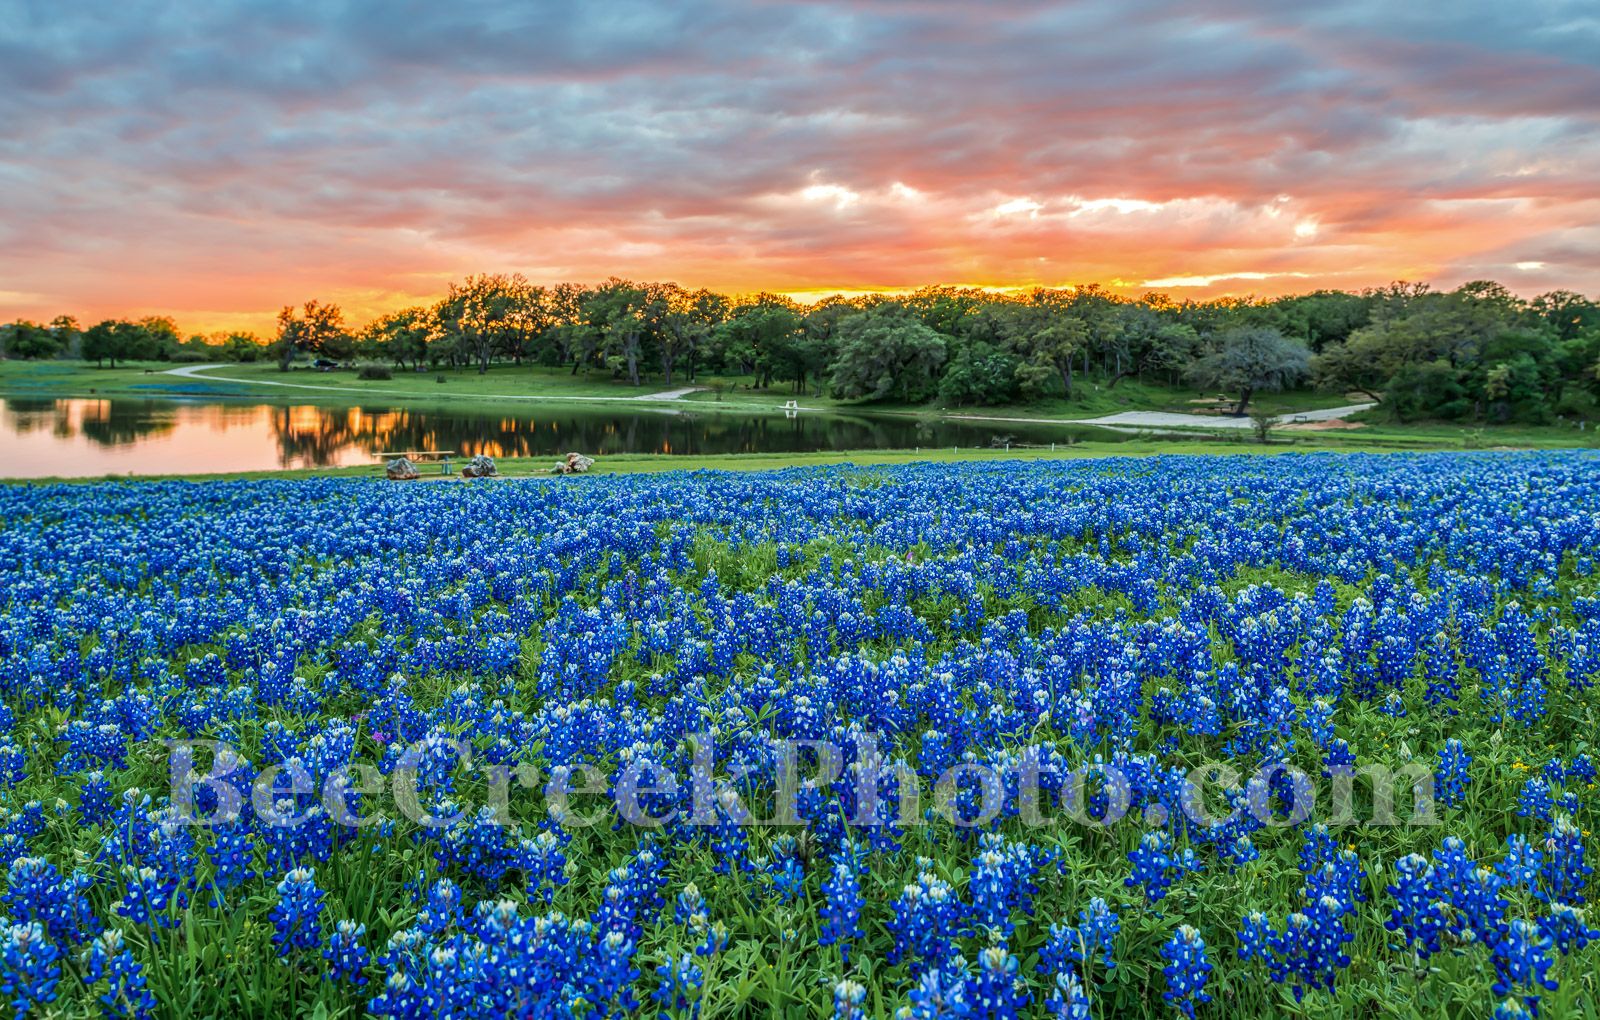 Bluebonnets, bluebonnet, sunset, sunsets, colors, oranges, pinks, reds, sky, colorful, blue bonnets, wildflowers, wildflower, Colorado River, landscapes, landscape, water, Texas flowers, Texas, flora,